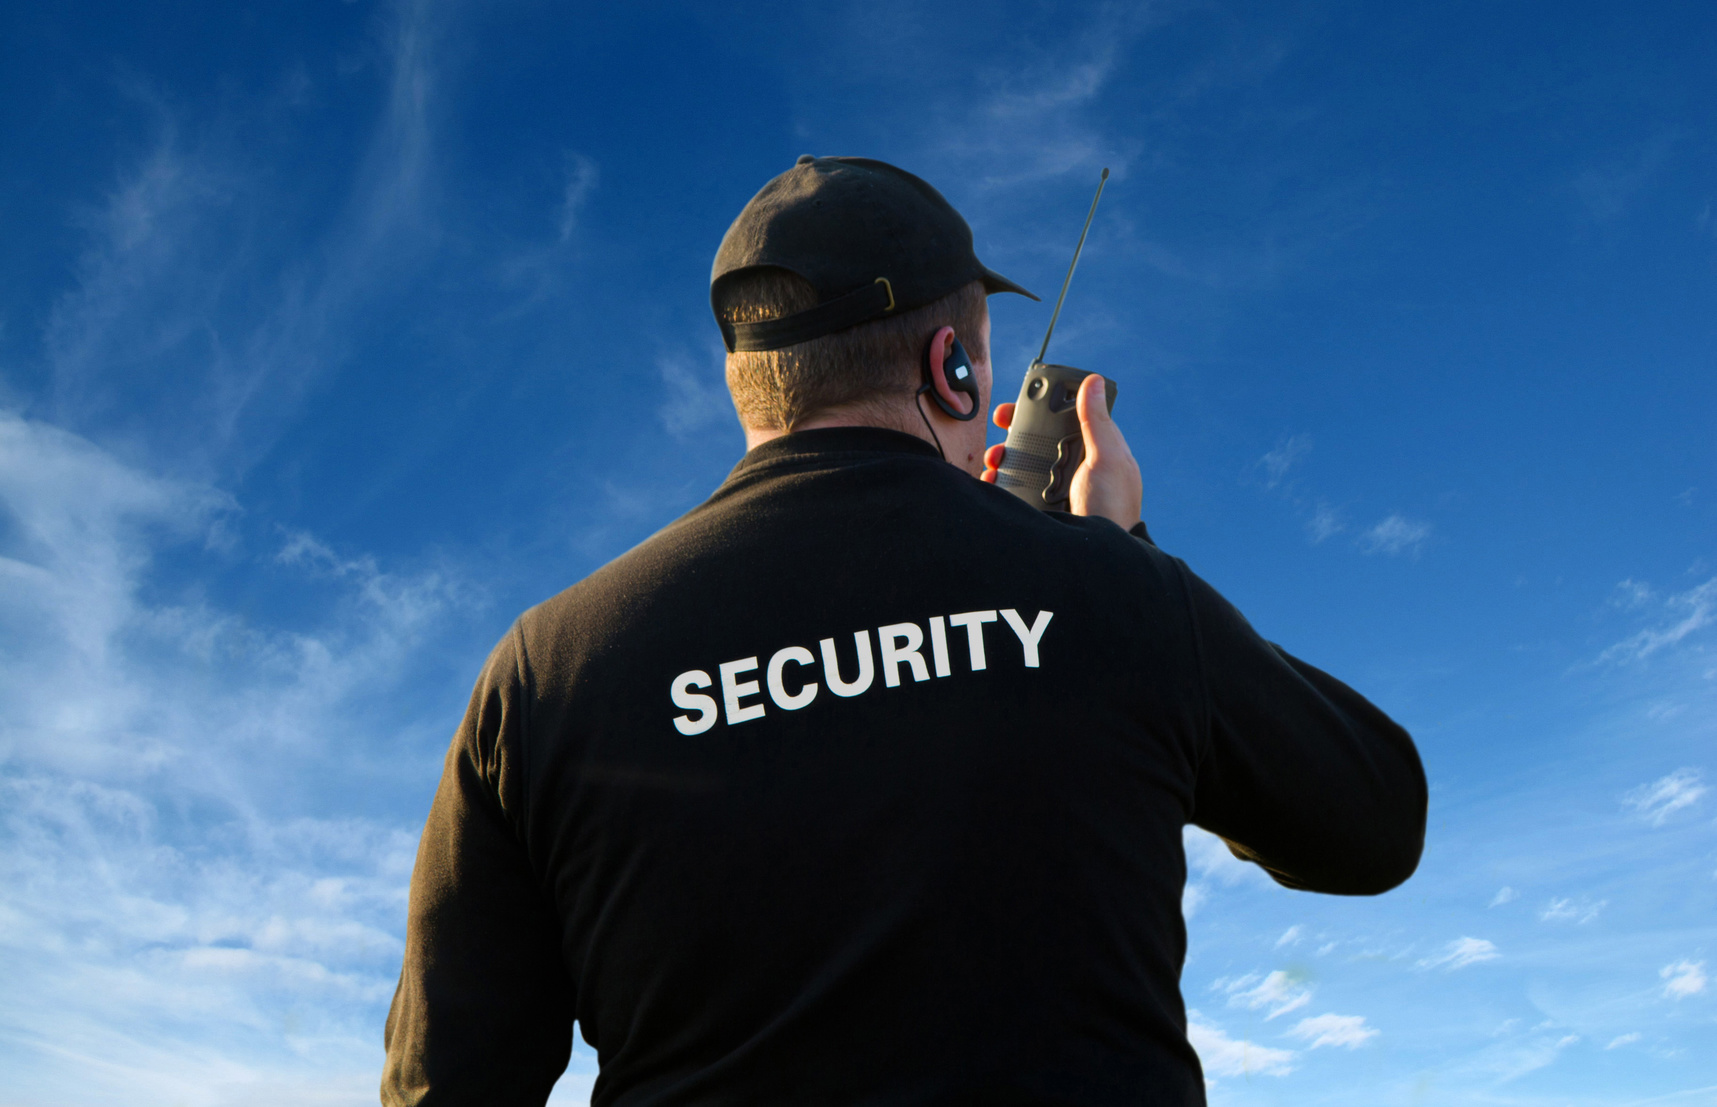 trident-security-1_the-main-responsibilities-of-private-security-guards_image.jpg